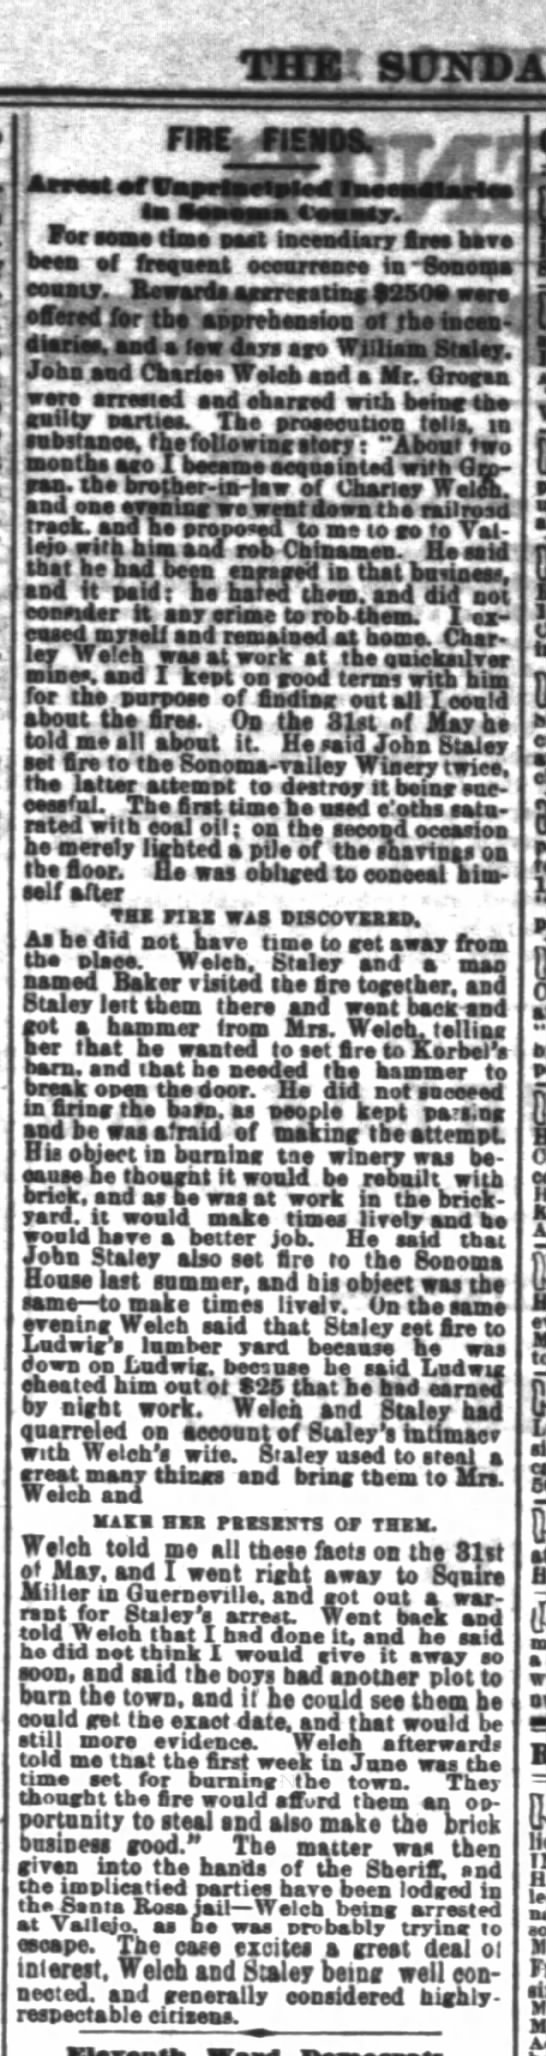 S.F. Chronicle Jun 8 1879 Charles Welch troubles - I Tar I'w Iw Pia. Pia ' Tar I'w Iw Pia. Pia '...